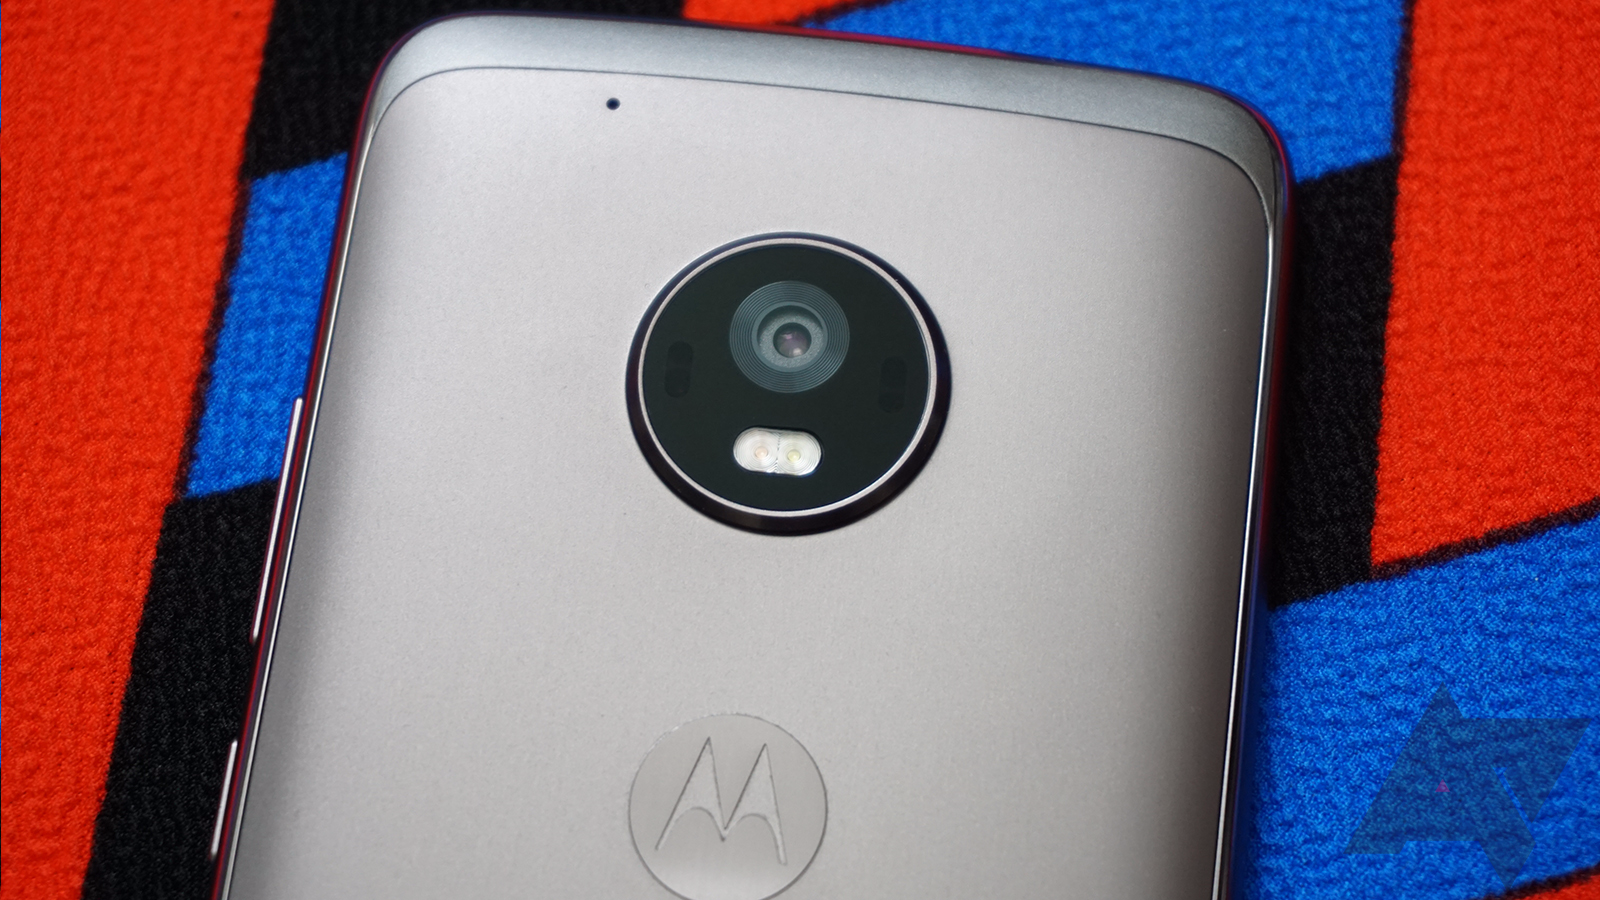 Motorola announces new Moto Mods, with new 360-degree camera mod